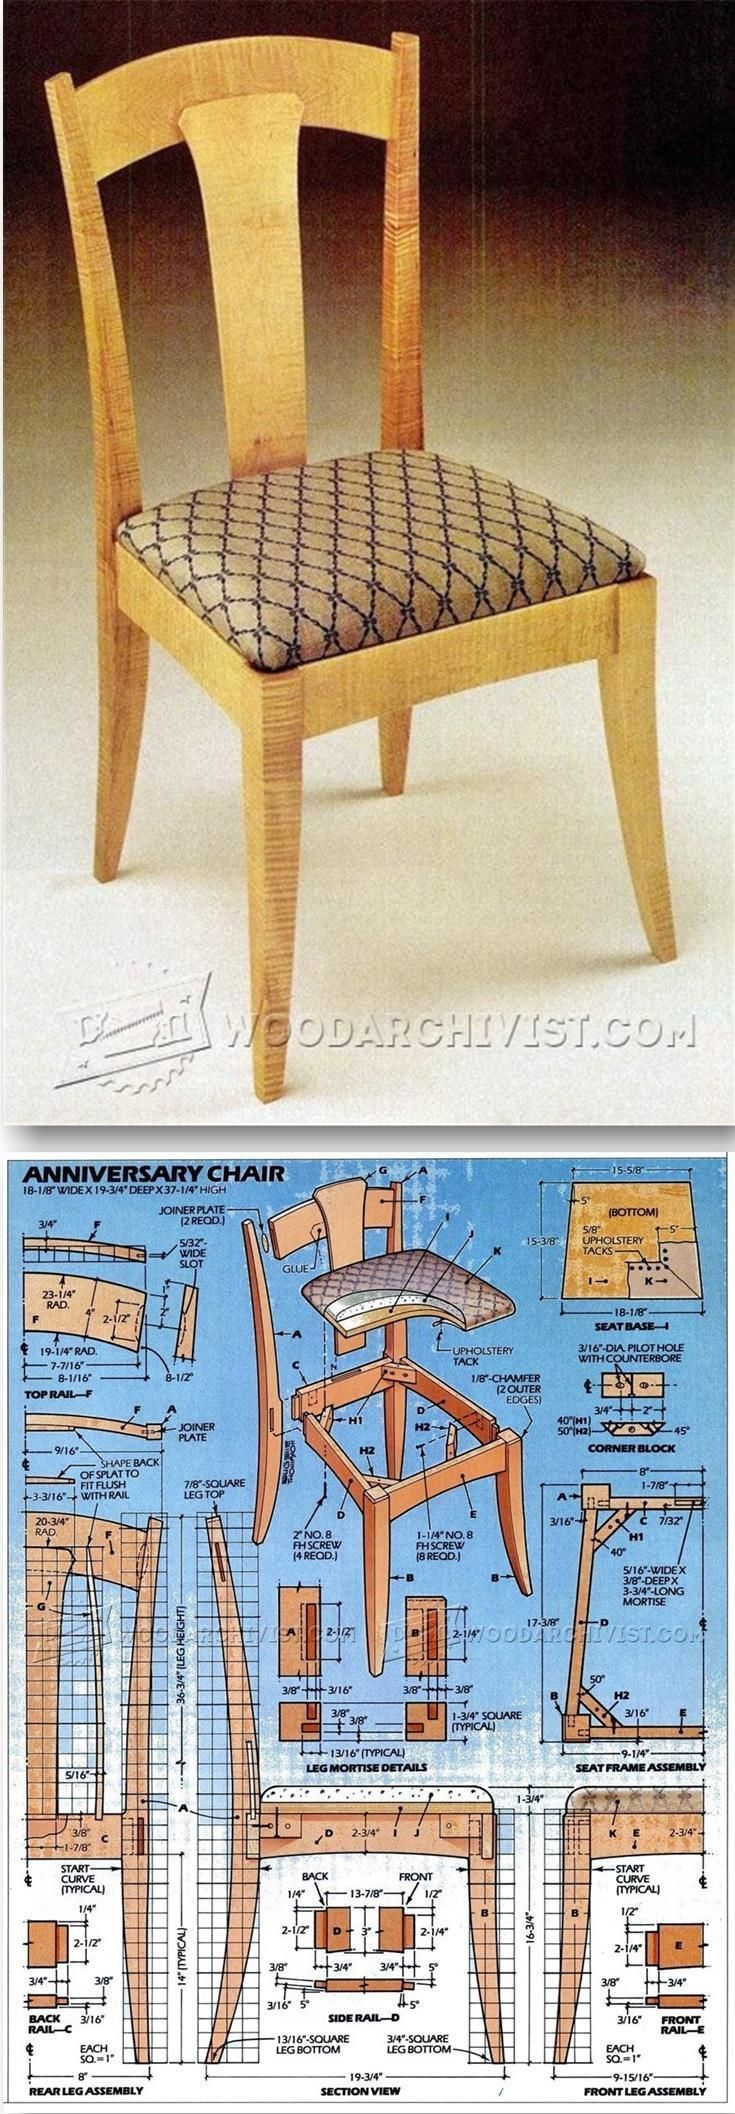 Side Chair Plans - Furniture Plans and Projects | WoodArchivist.com